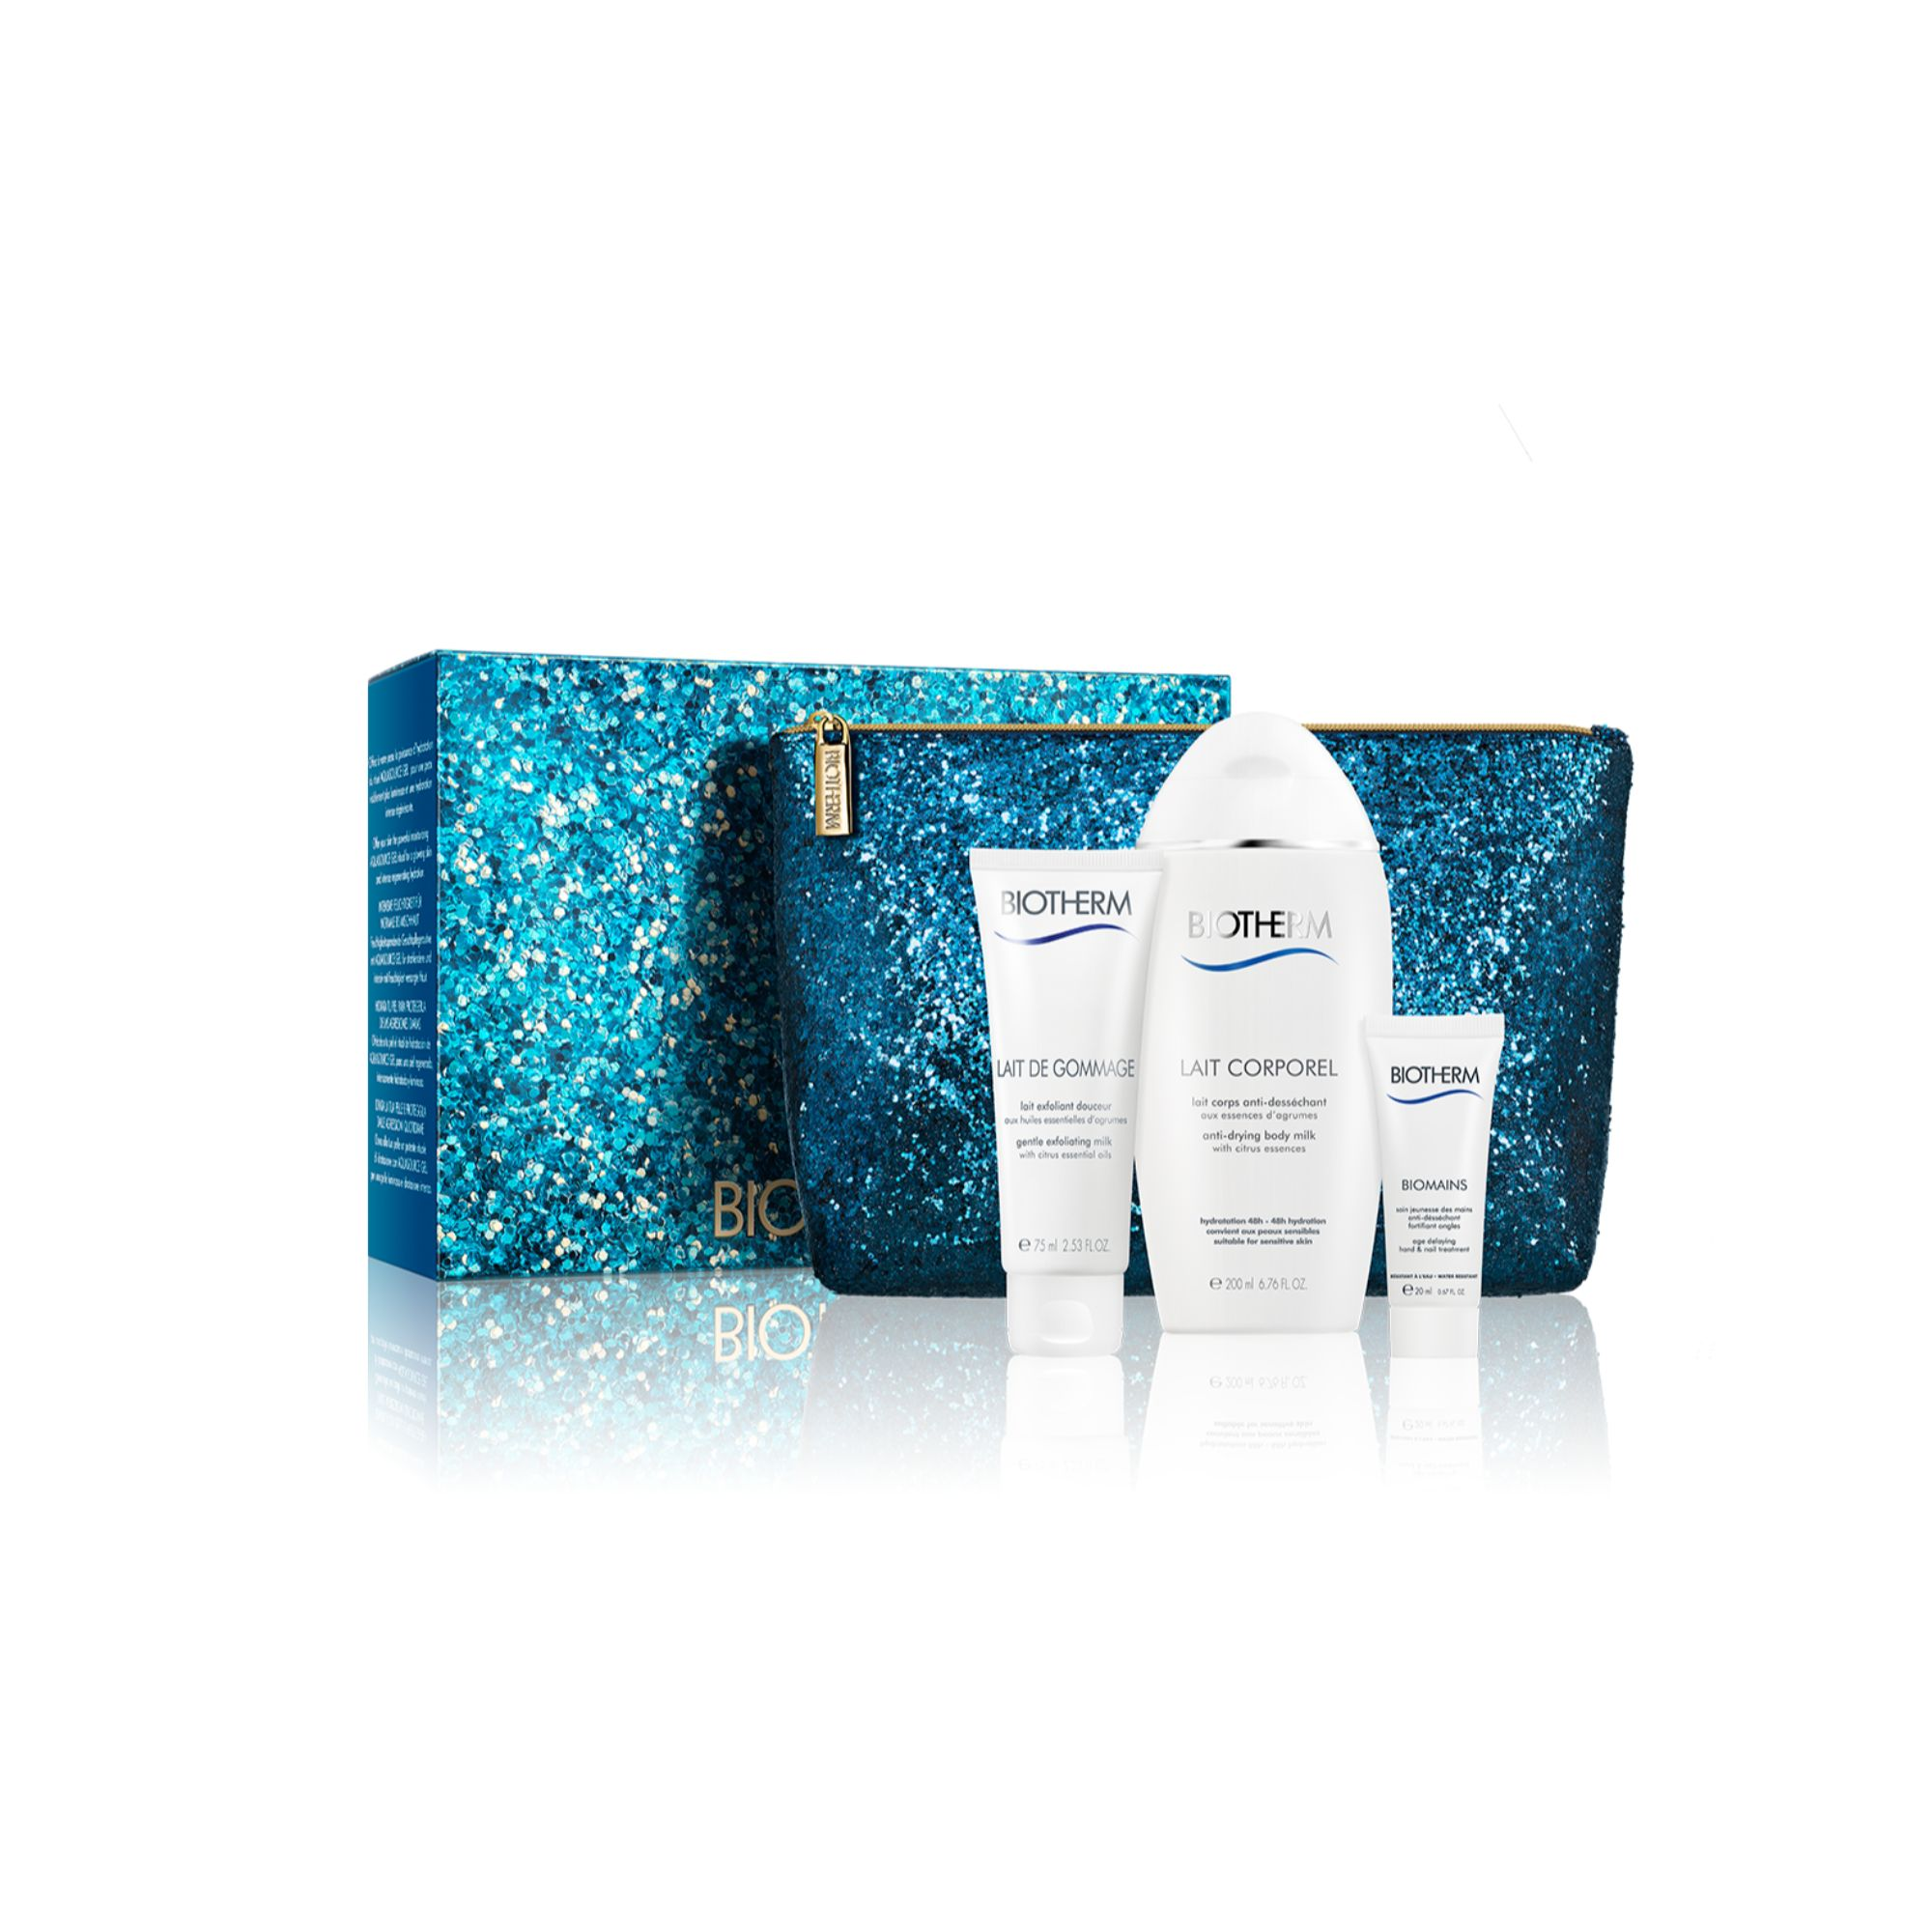 Lait Corporel Recruitment Body Lotion Giftbox